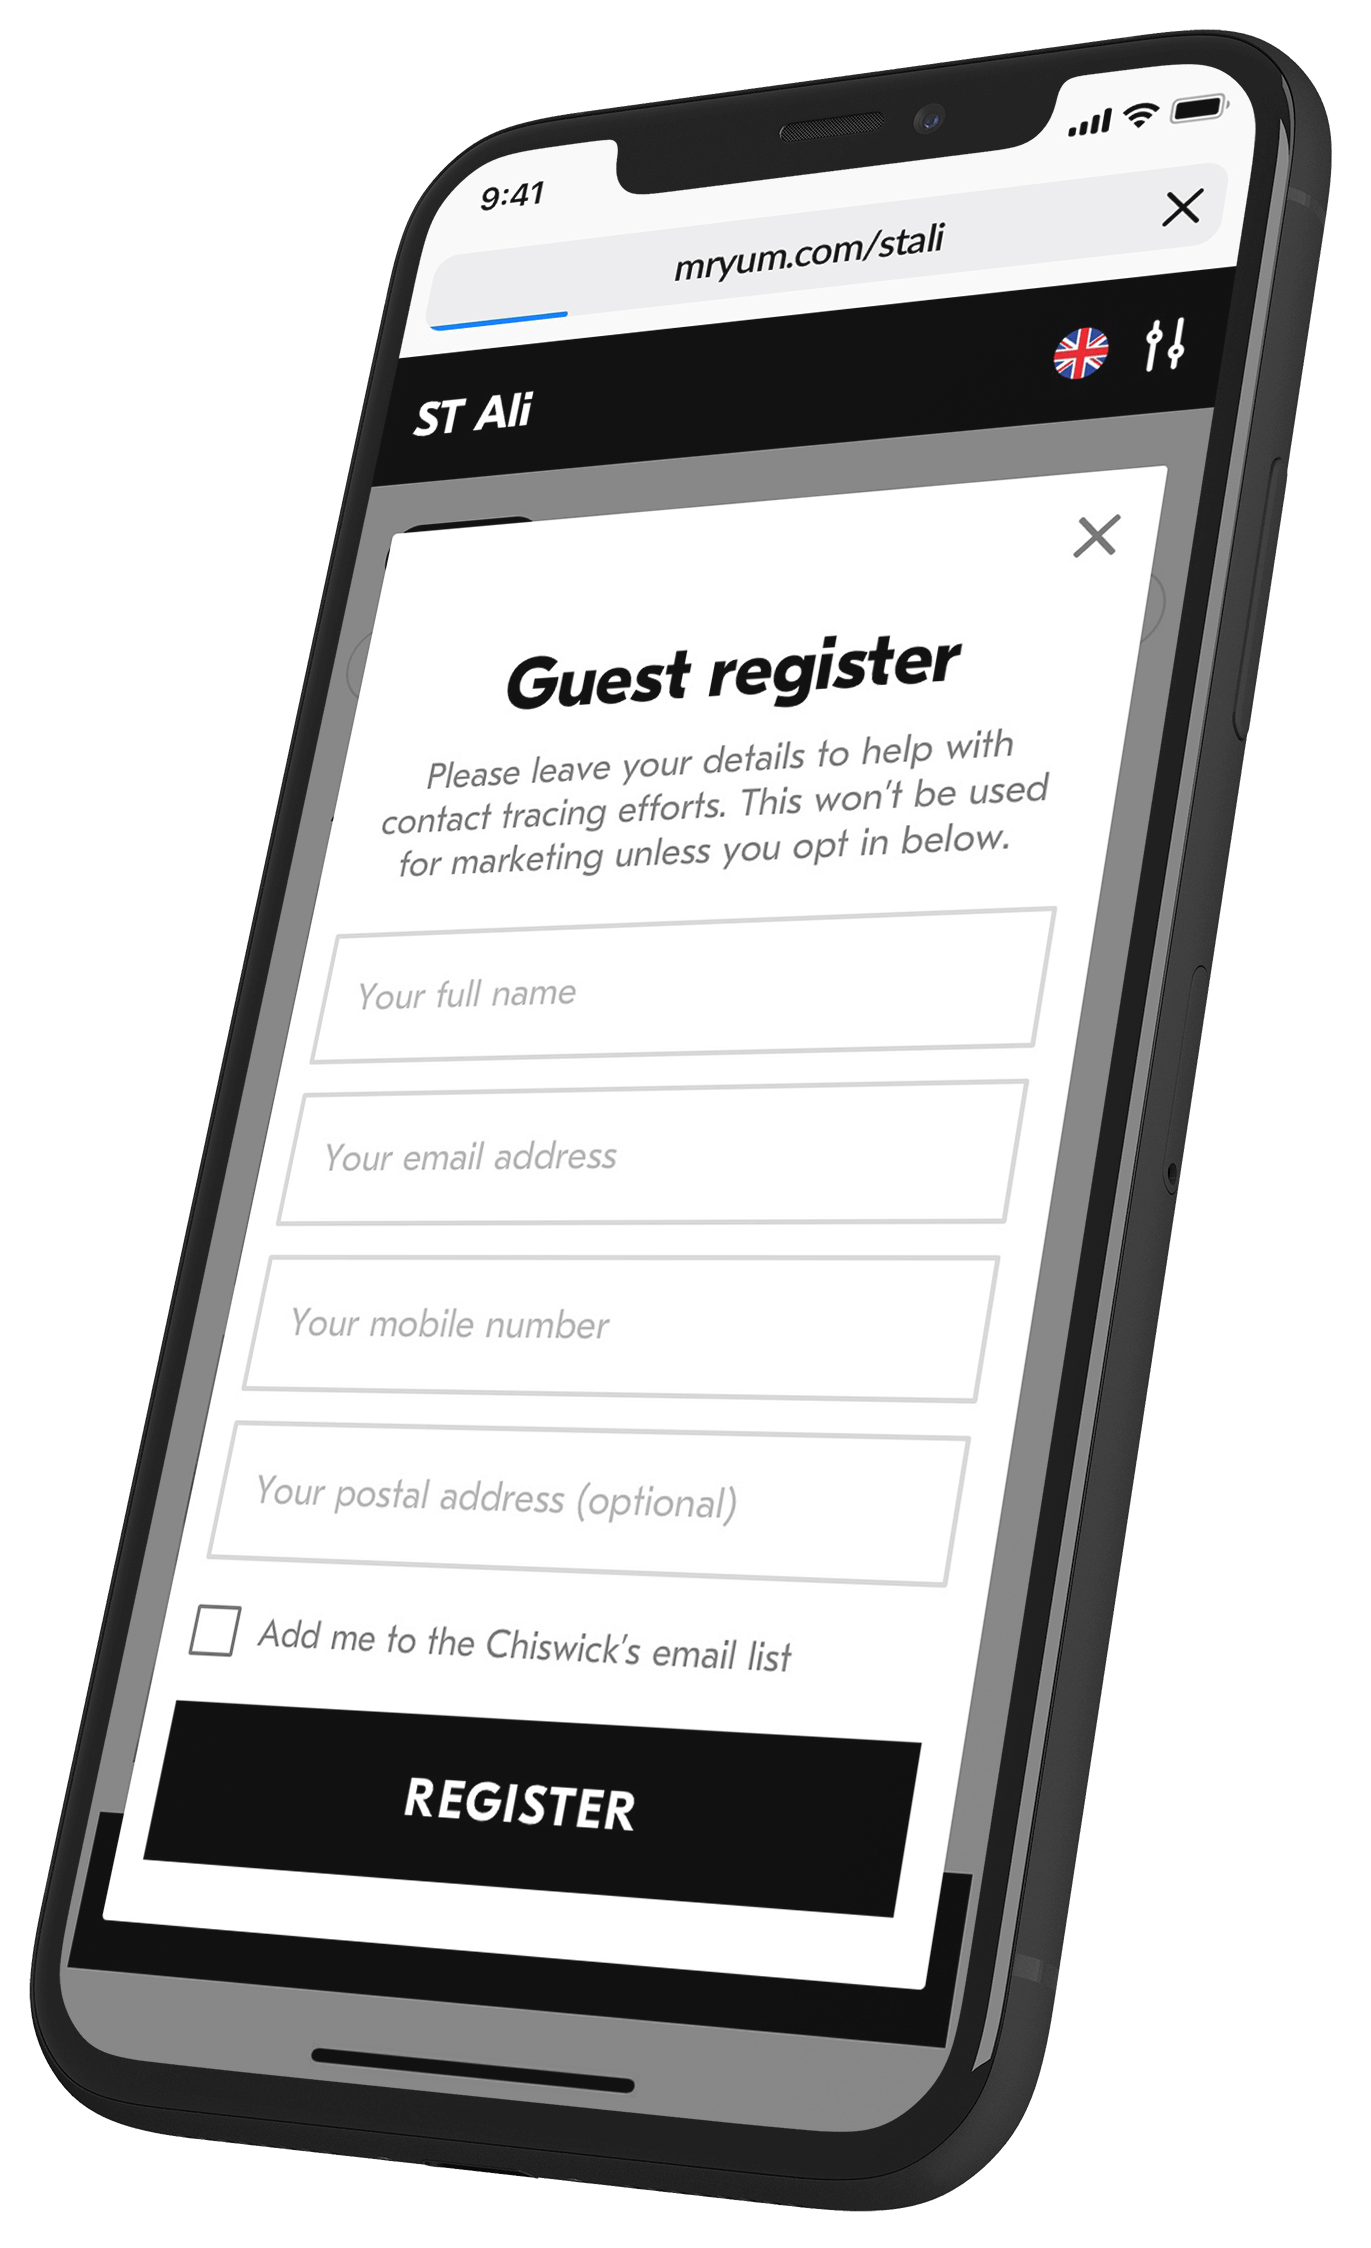 Mobile phone showing guest register form for contact tracing